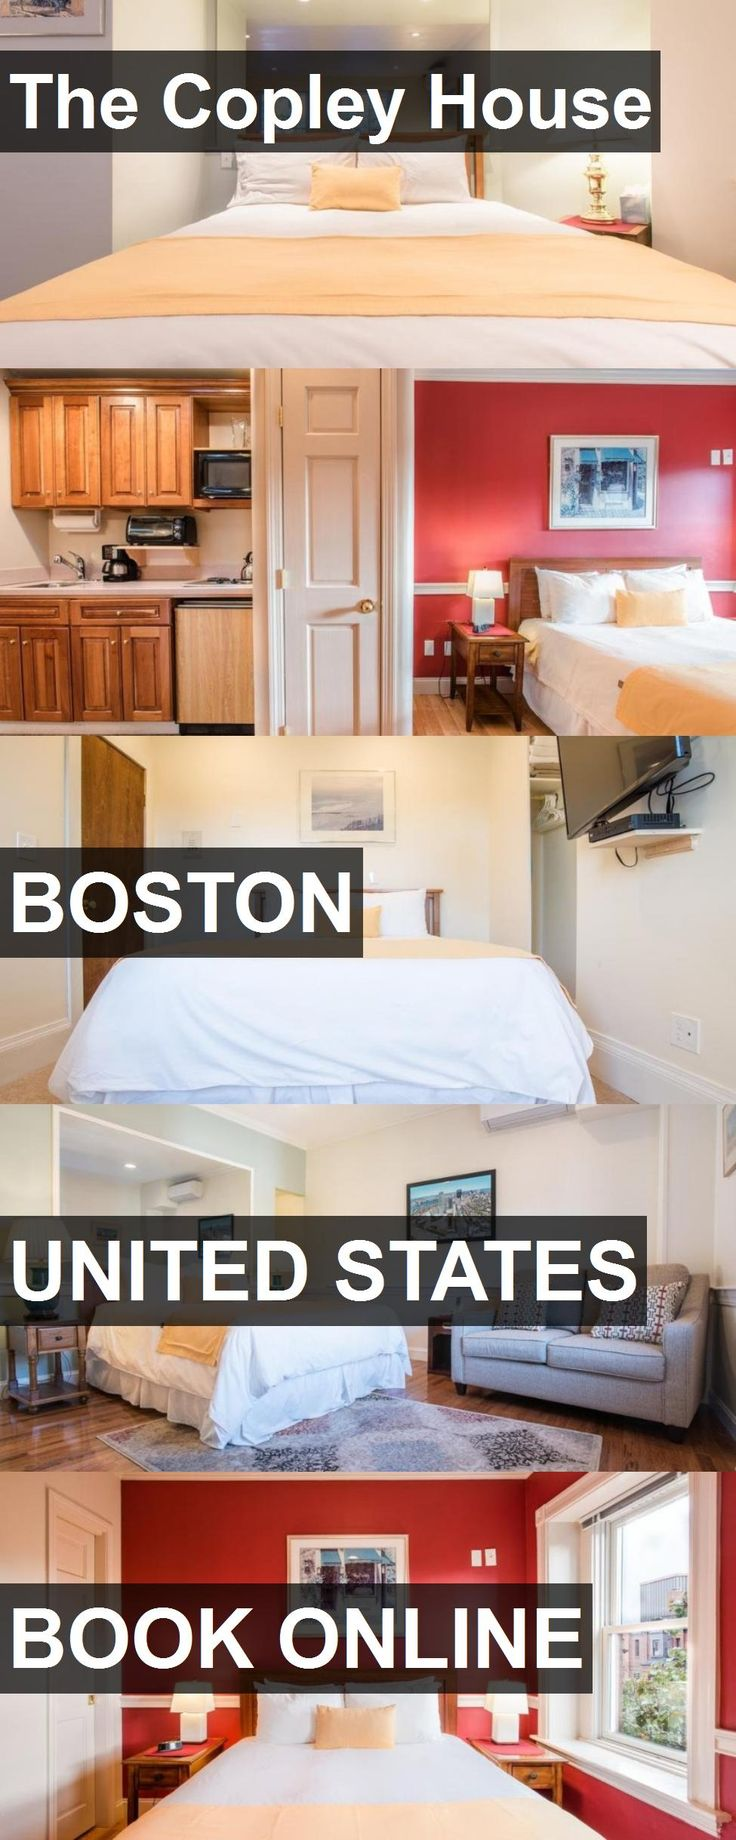 Hotel The Copley House in Boston, United States. For more information, photos, reviews and best prices please follow the link. #UnitedStates #Boston #TheCopleyHouse #hotel #travel #vacation